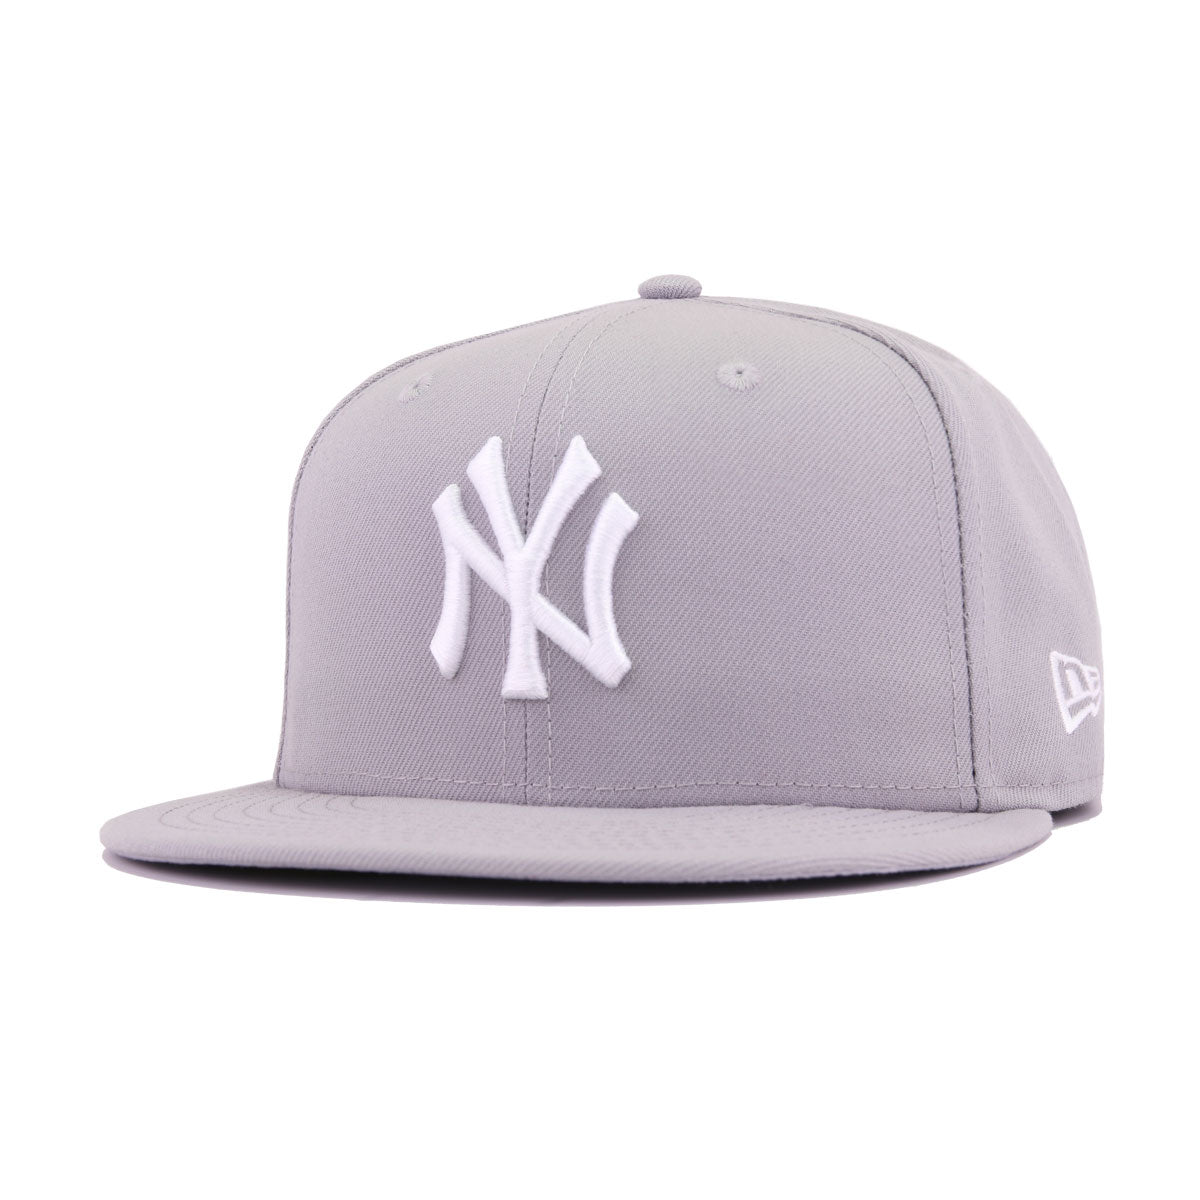 71c0ac16e3914 New York Yankees Grey New Era 59Fifty Fitted